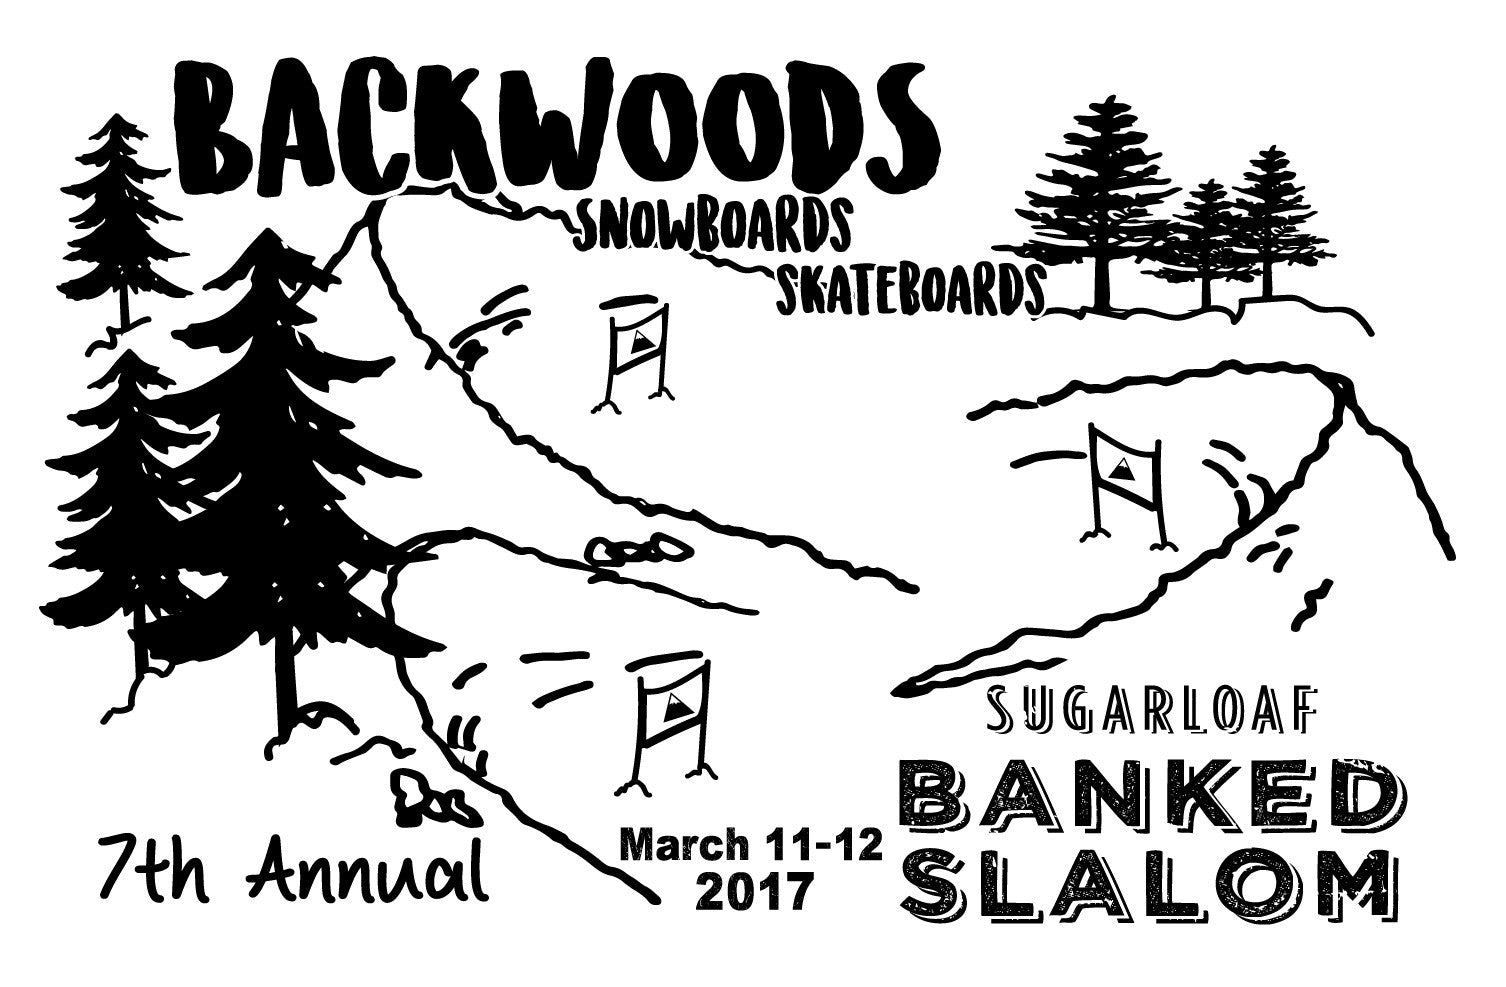 7th Annual Banked Slalom at Sugarloaf Maine